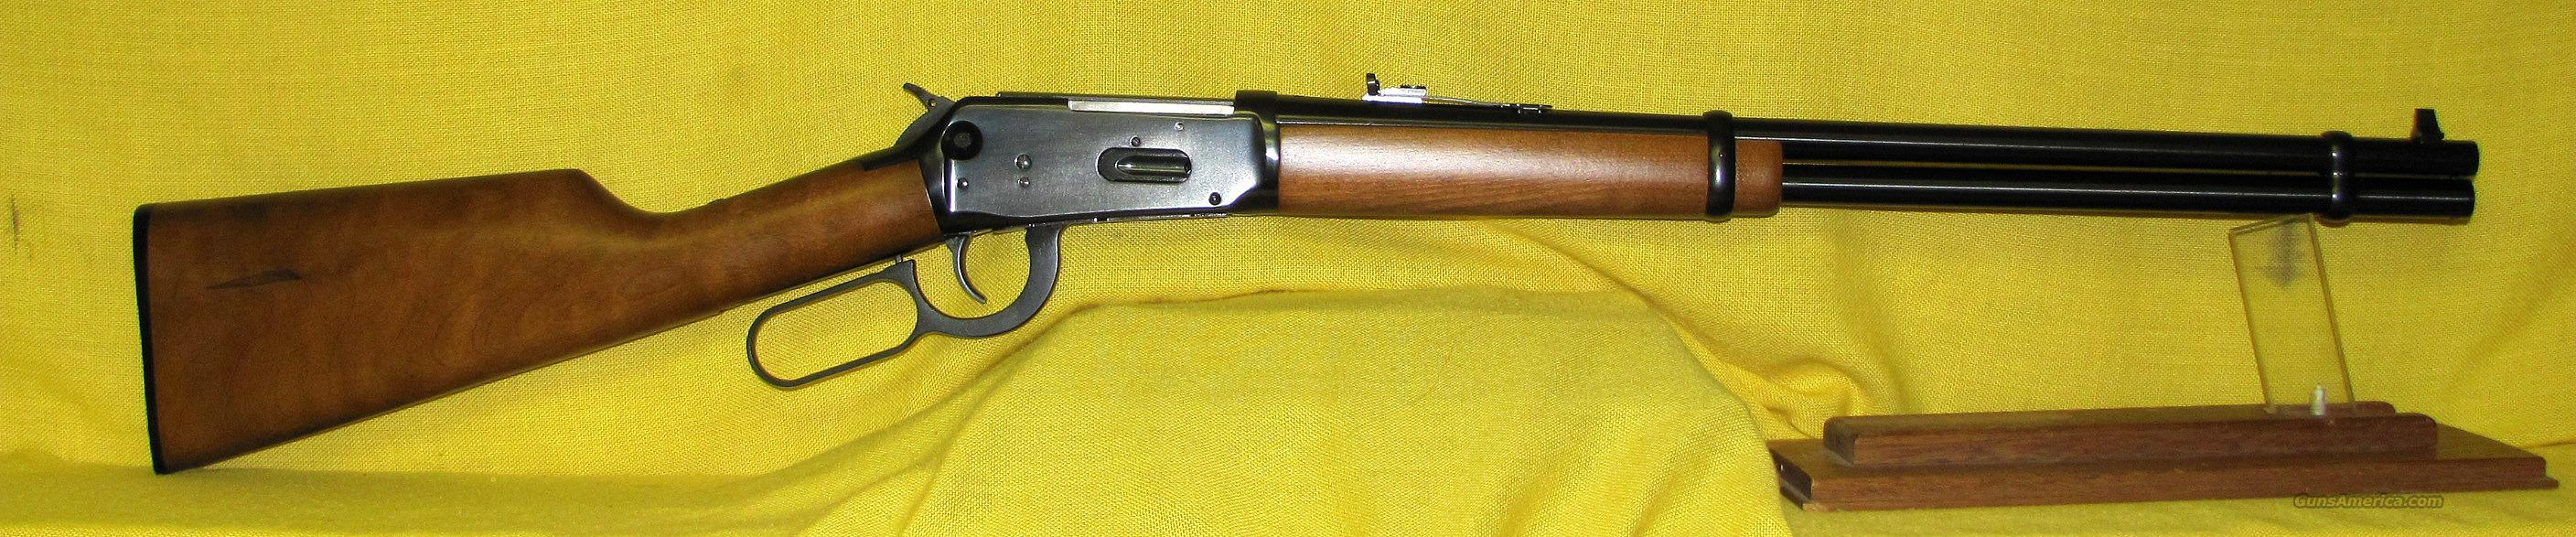 "HENRY LARGE LOOP .22LR 16""BARREL  Guns > Rifles > Henry Rifle Company"